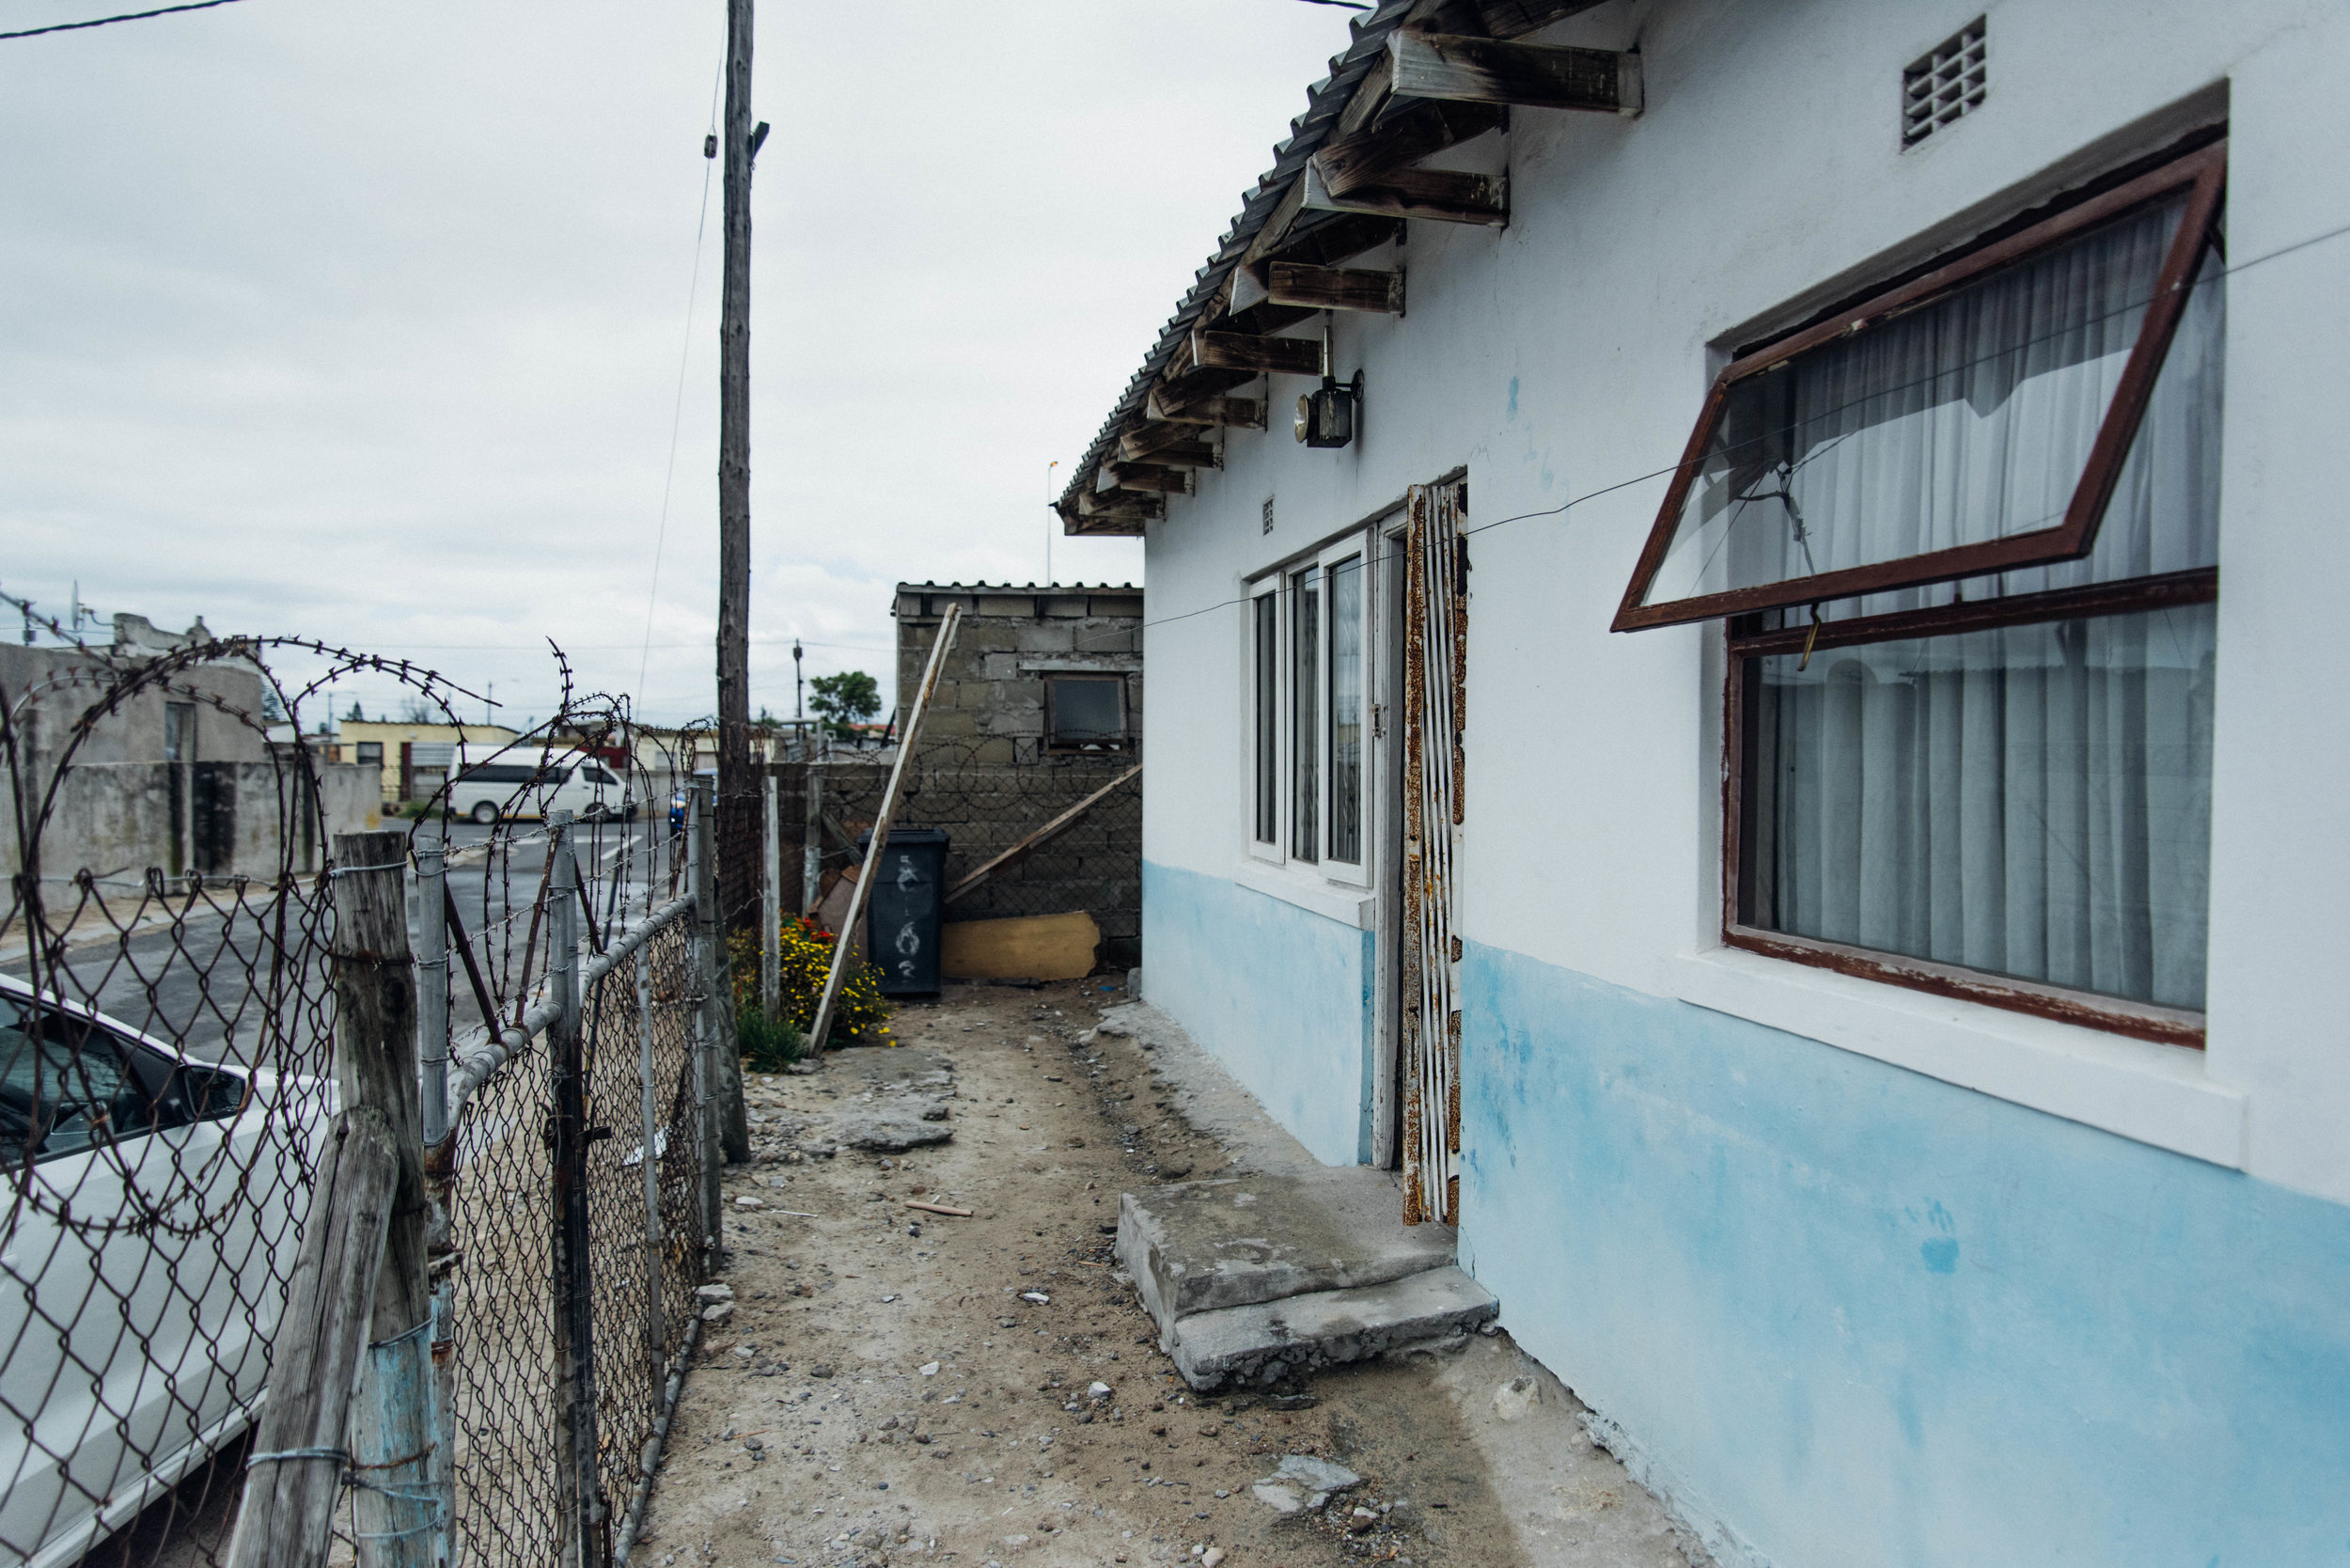 In Philippi East outside Vumazonke's home, which is attached to a church.